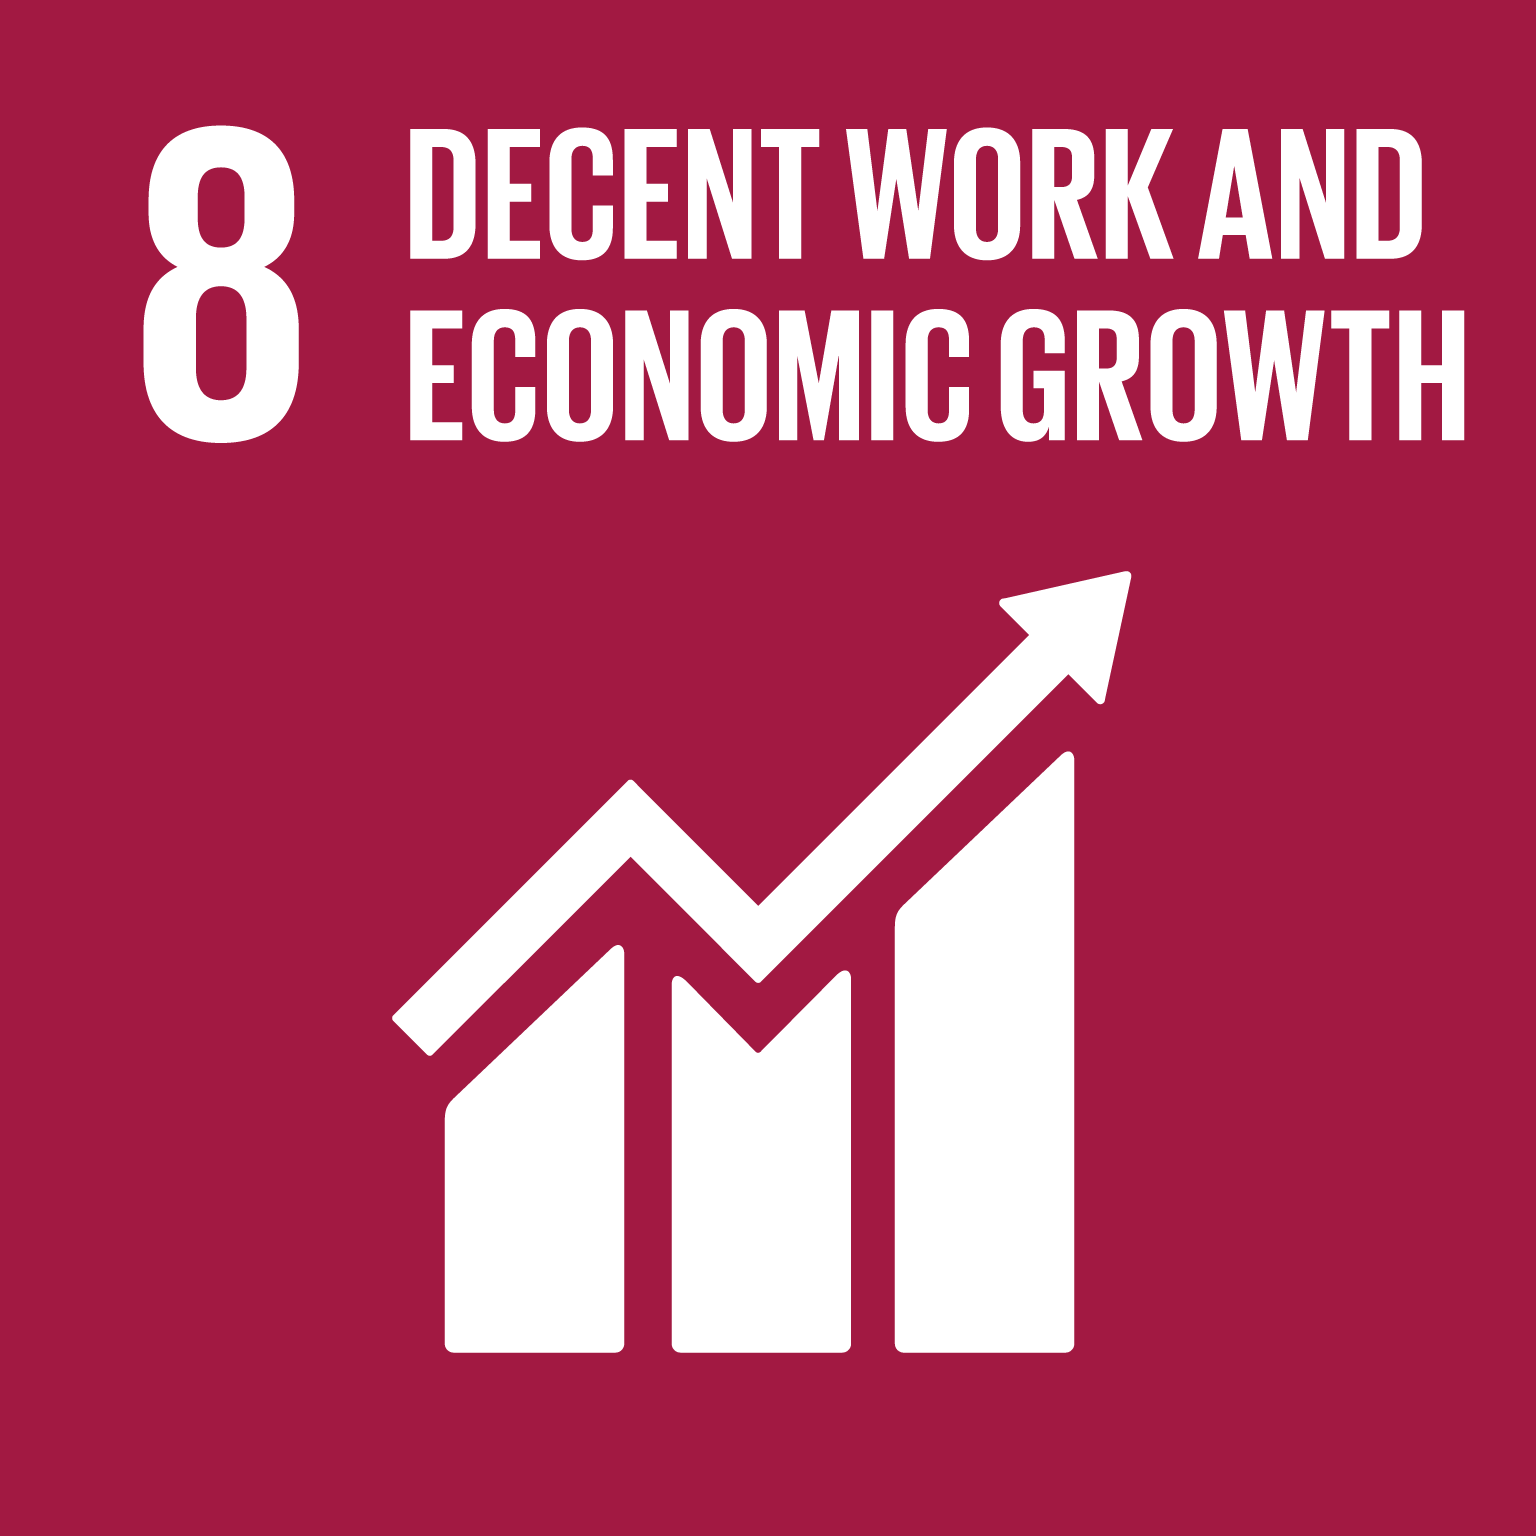 sdg icon #8 DECENT WORK AND ECONOMIC GROWTH